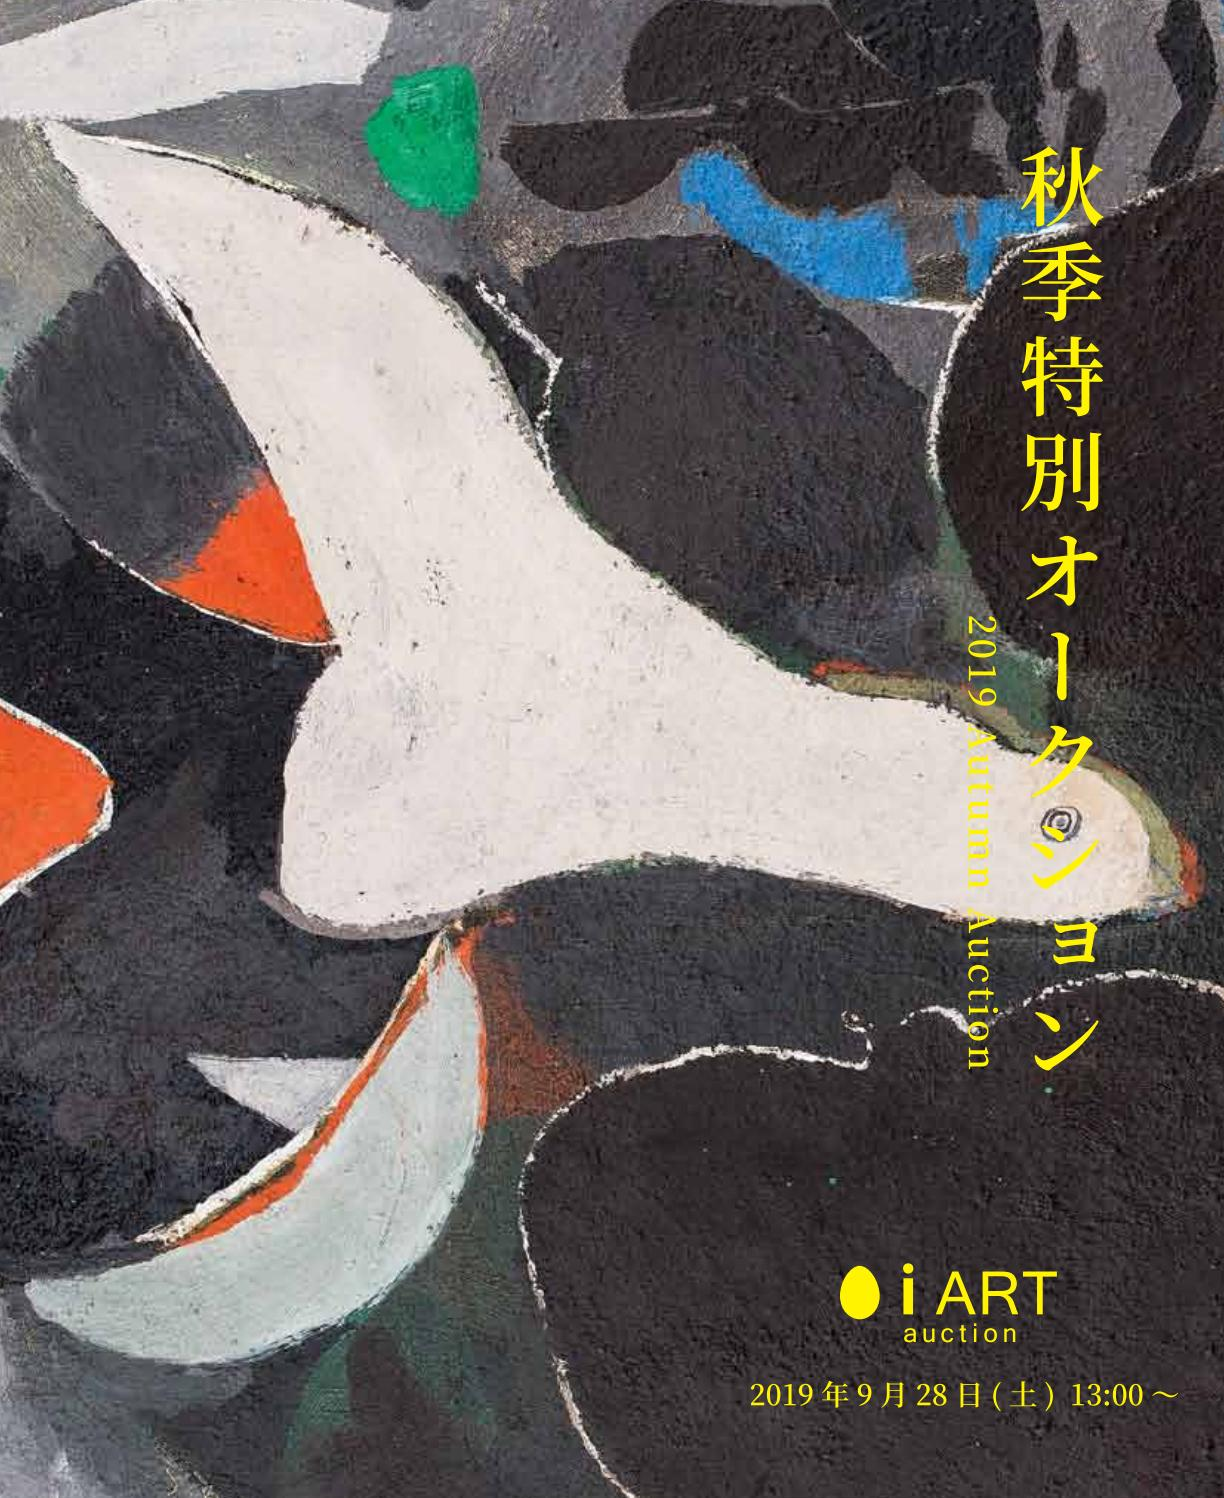 Iart Auction No 59 Auction Cataogue By Iart Auction Issuu